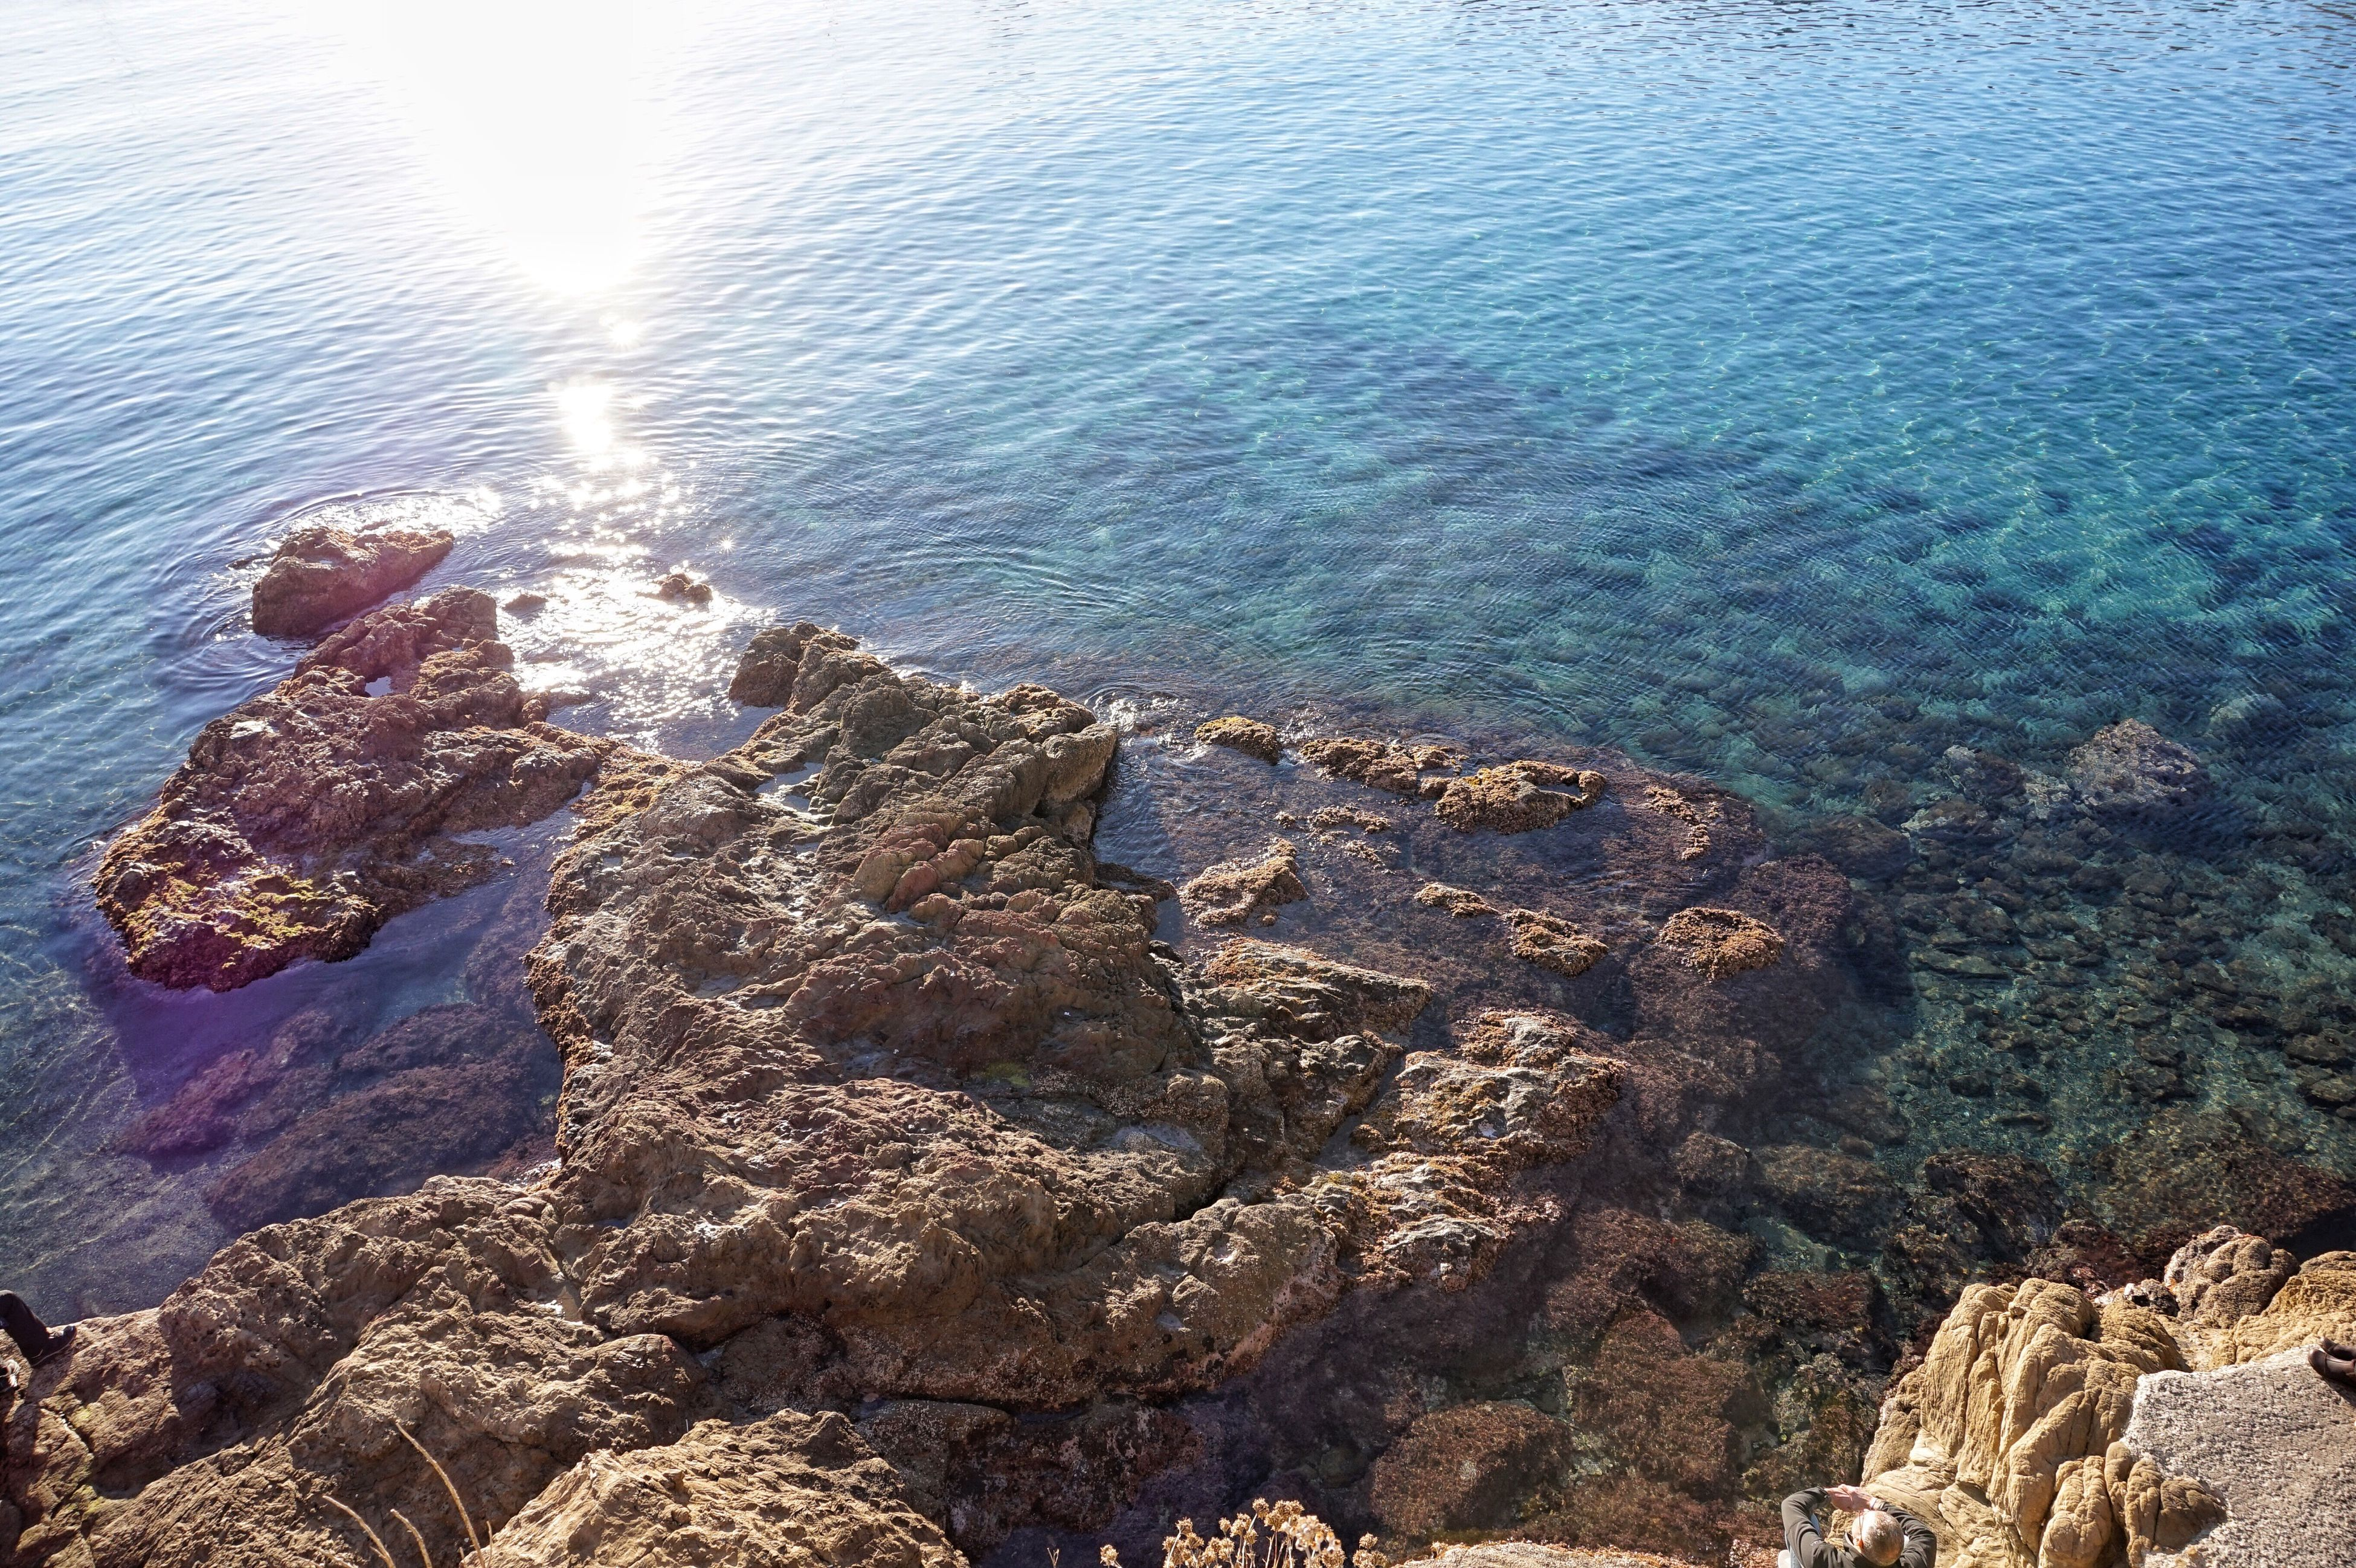 water, rock - object, sea, nature, sunlight, no people, day, high angle view, beauty in nature, outdoors, tranquility, tranquil scene, scenics, beach, sky